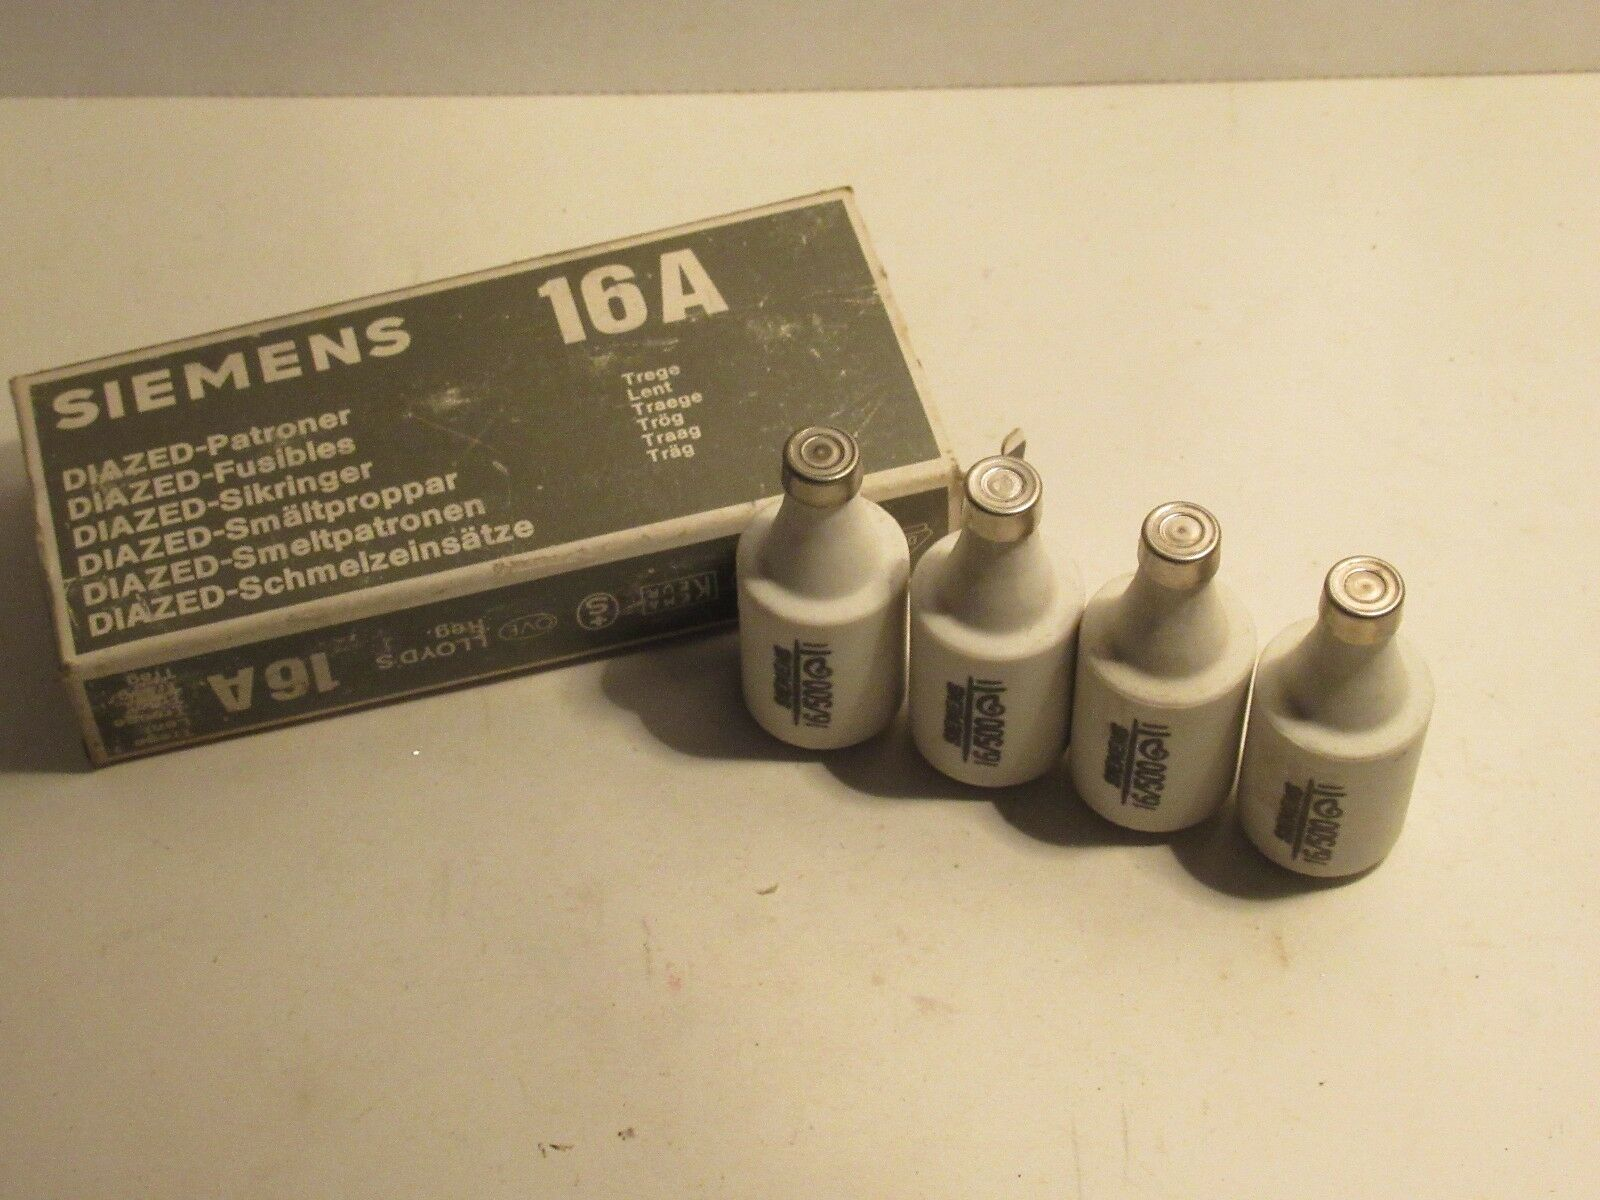 Siemens Oven Fuse Box Schematic Diagrams Of 4 16 500 5st 5sb2 916 1 16a 500v Bottle New